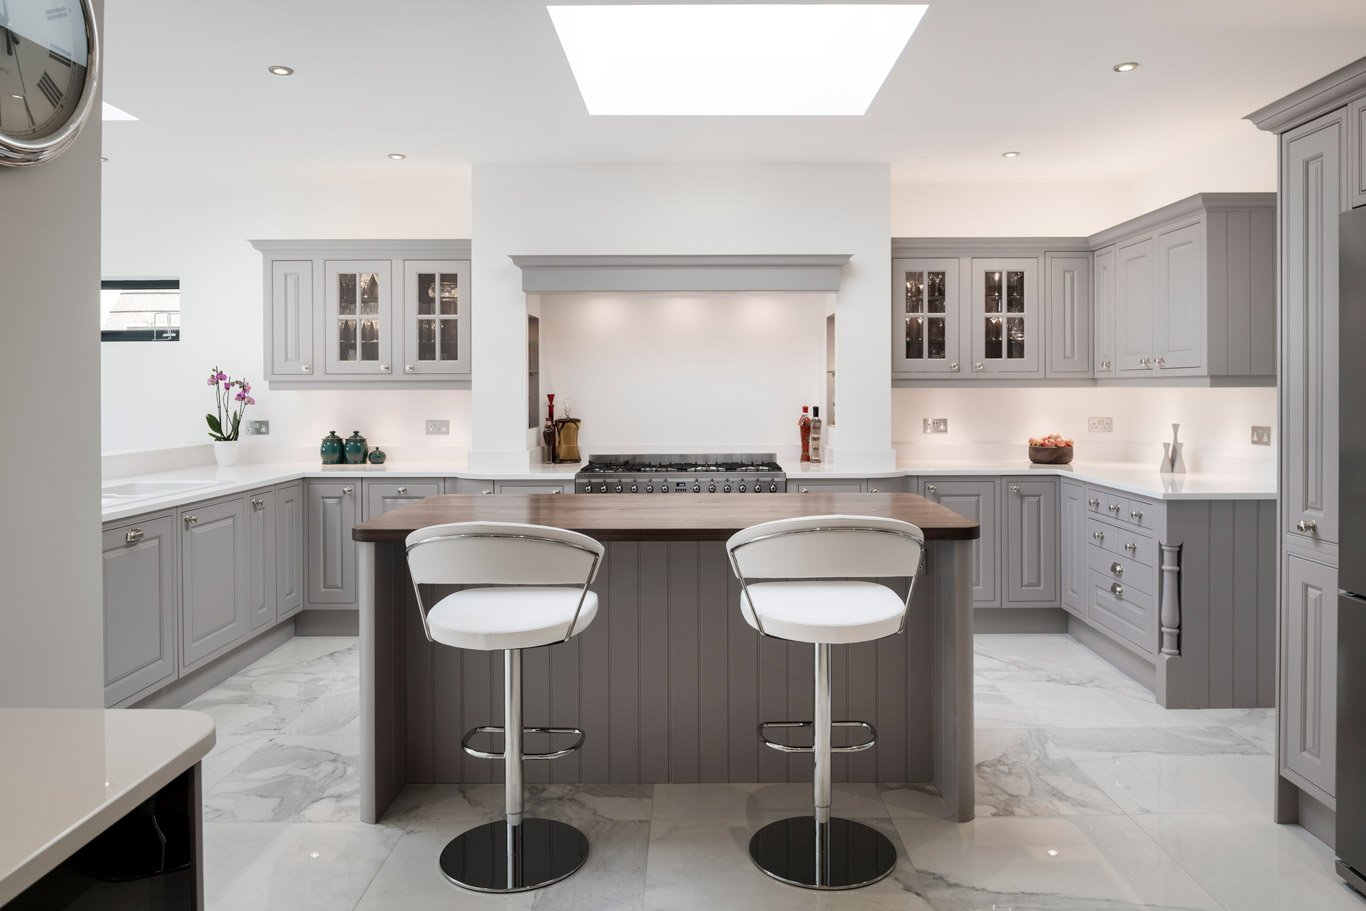 Grey u shaped shaker kitchen with kitchen island, two stalls and wooden work surface